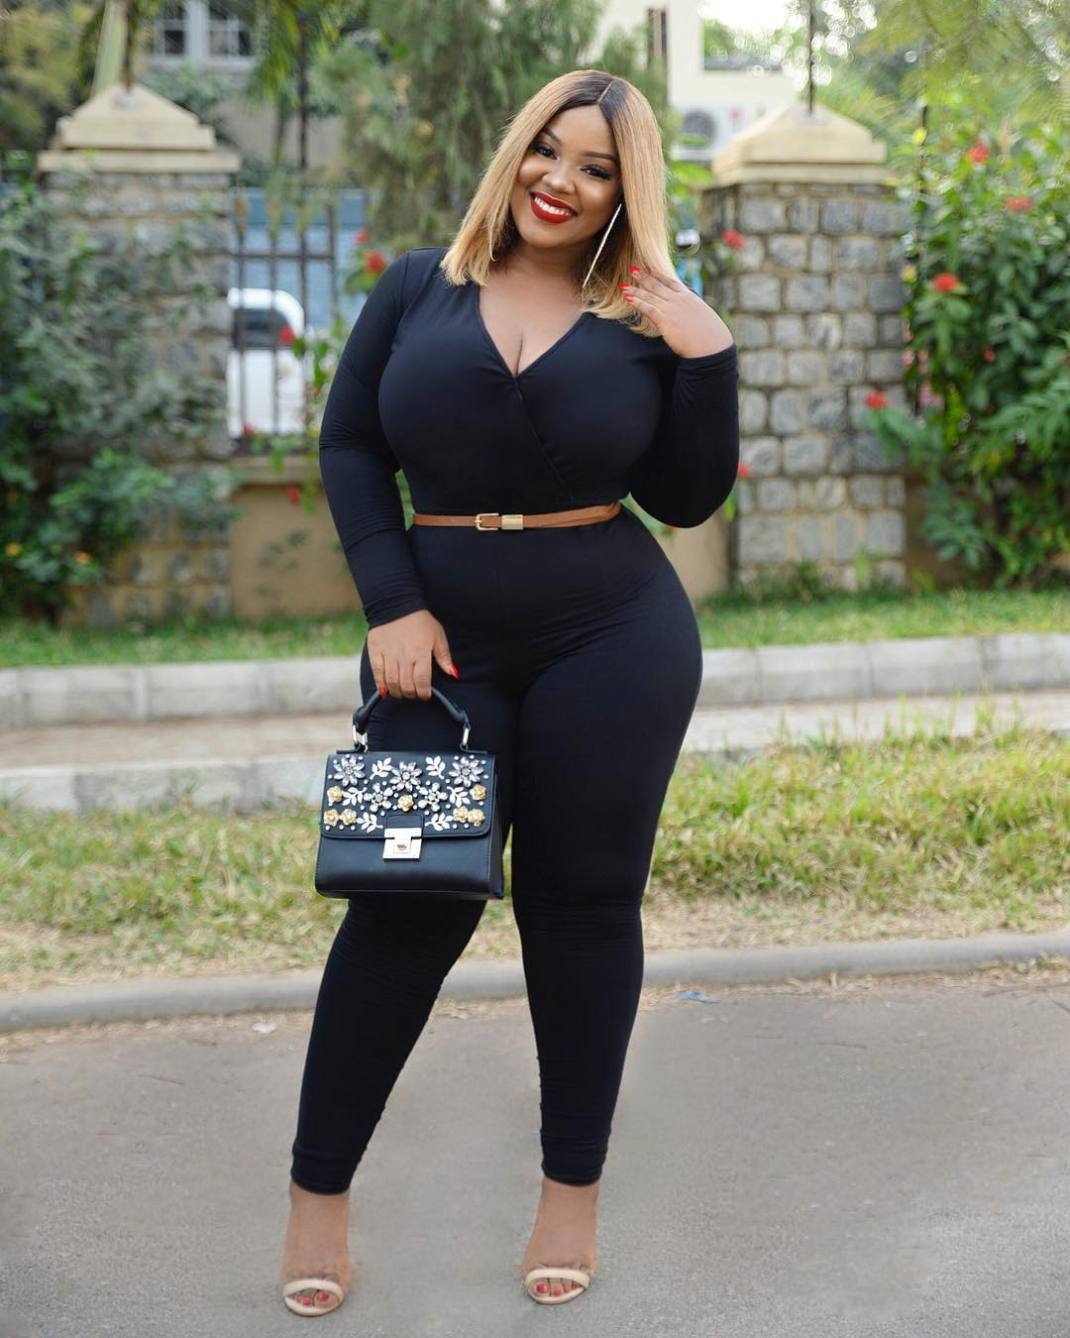 26362824 394631324295141 558641517107871744 n - This Curvy Influencer Will Show You How To Look Stylish If You Are Plus Size